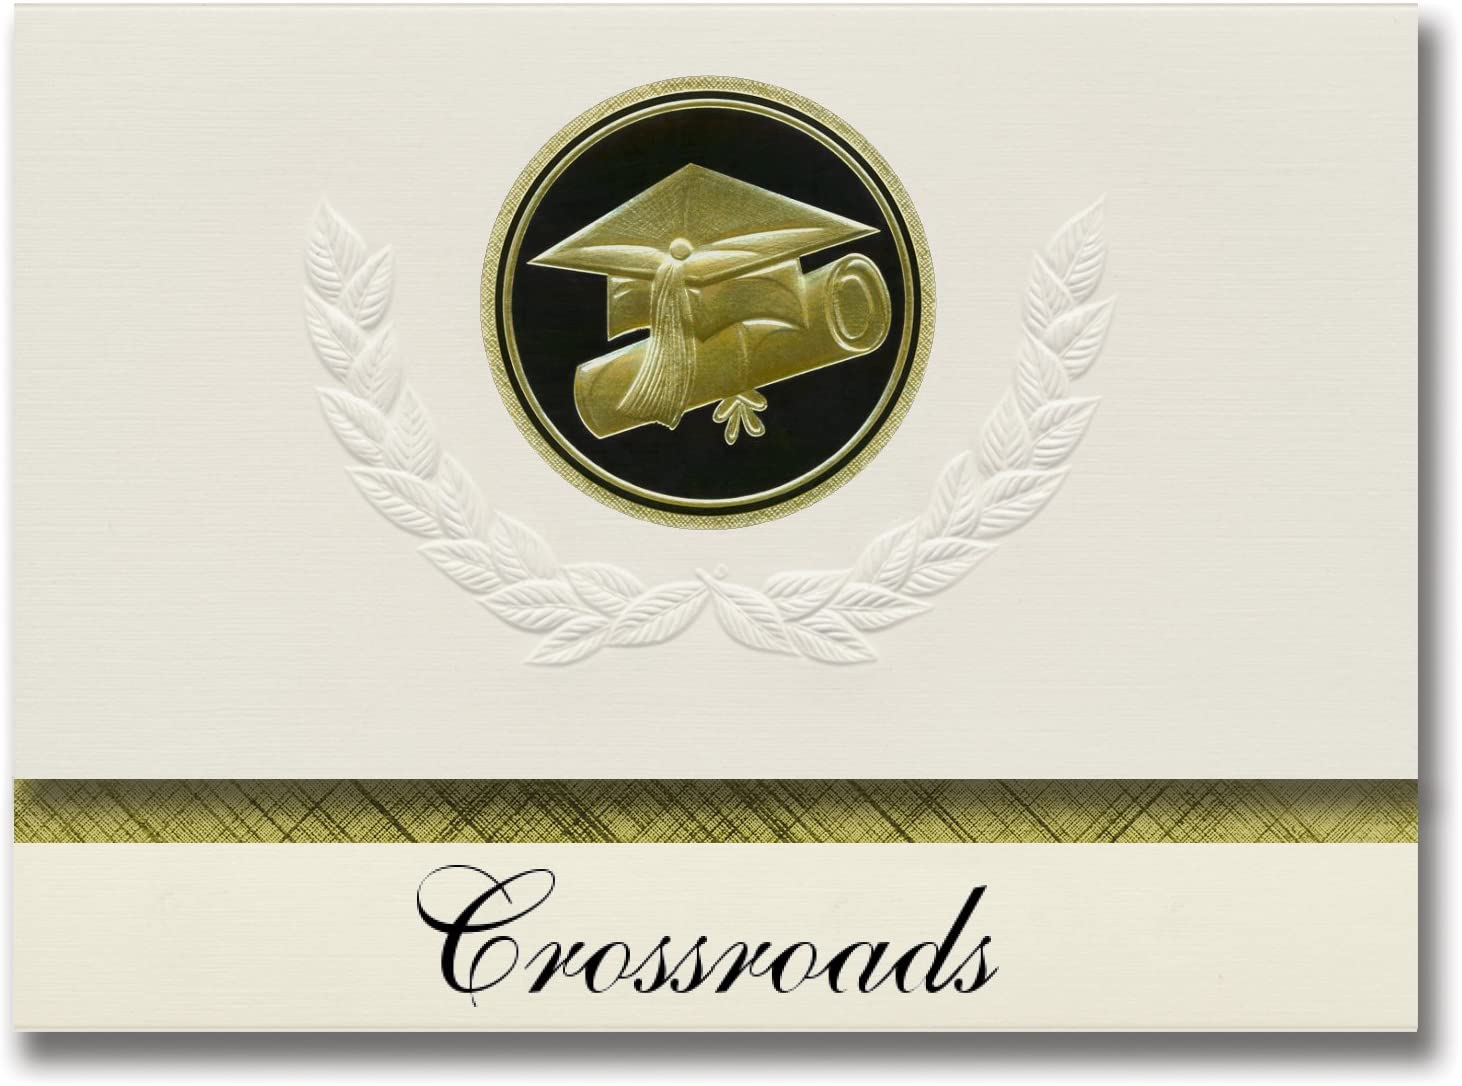 Signature Announcements Crossroads (Ripon, WI) Graduation Announcements, Presidential style, Elite package of 25 Cap & Diploma Seal Black & Gold